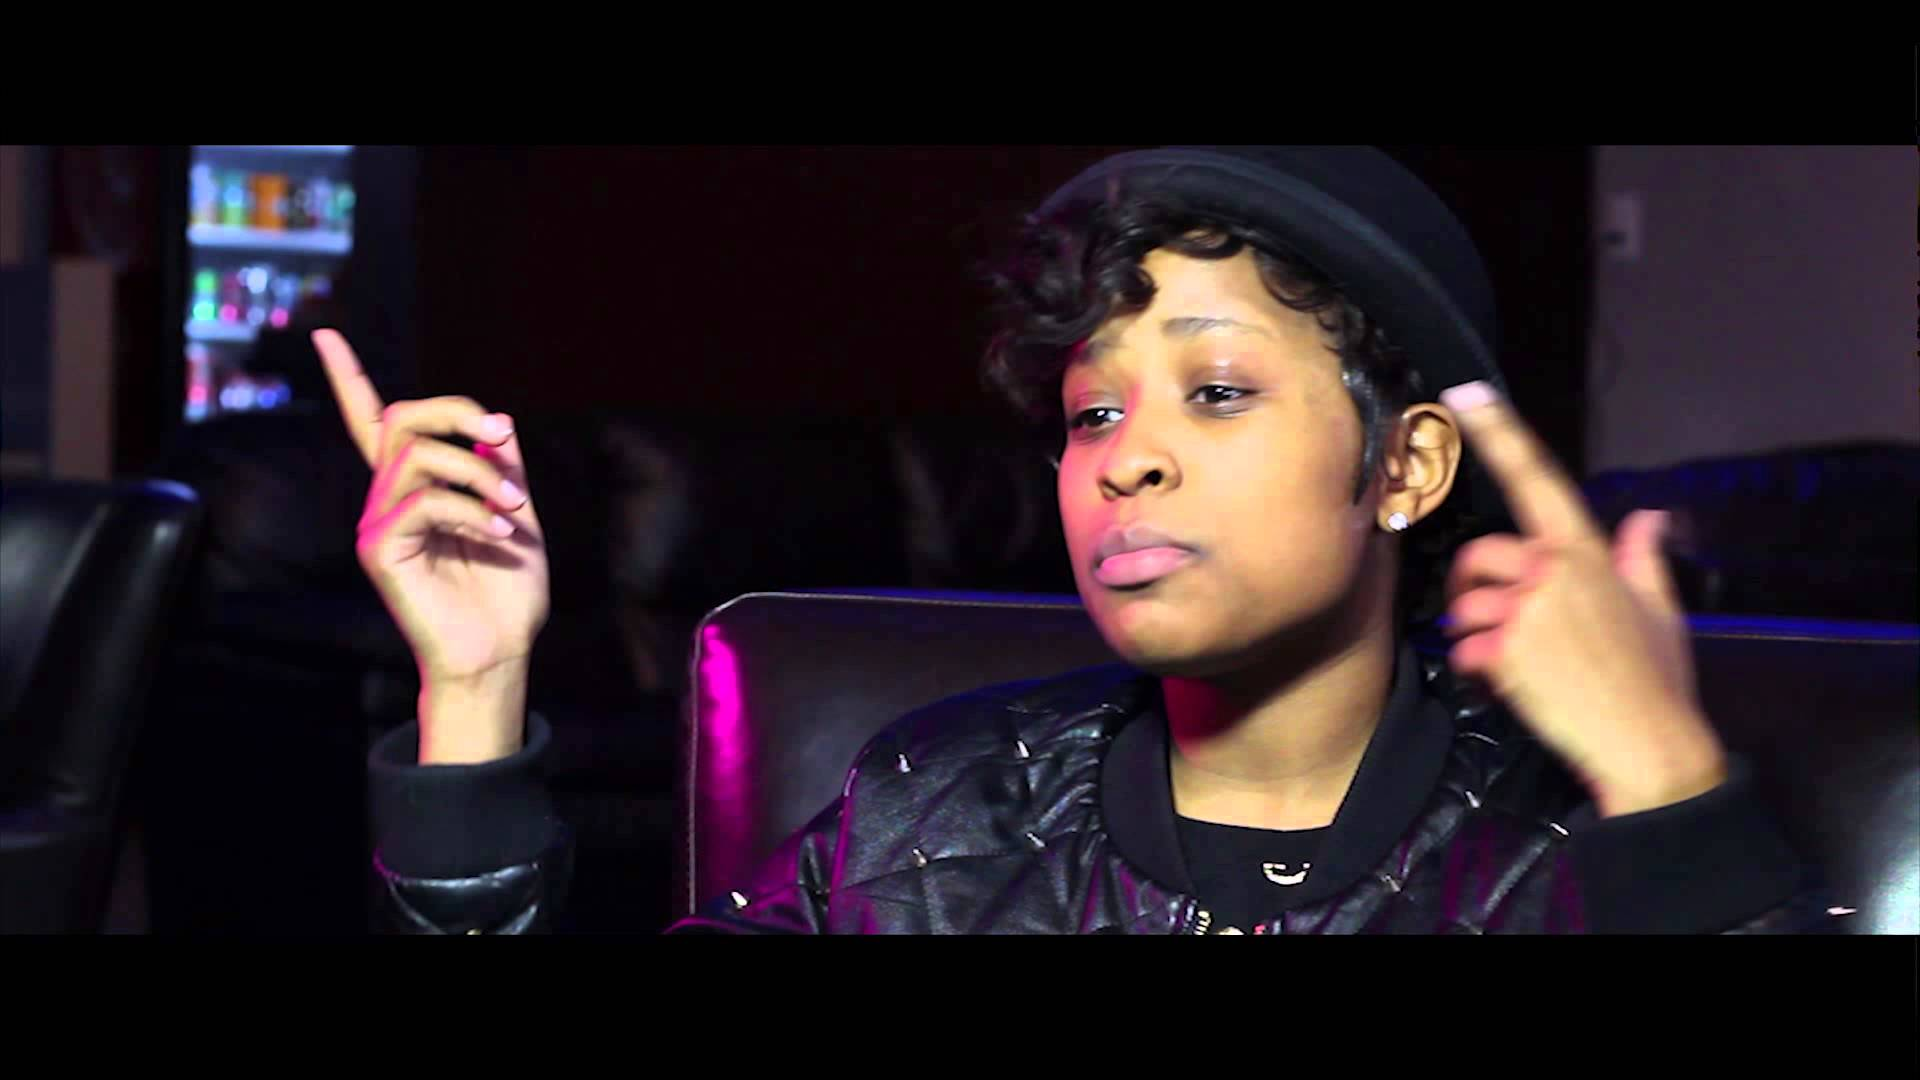 dej loaf interview first interview try me wiz khalifa drake big sean makkonnen e-40